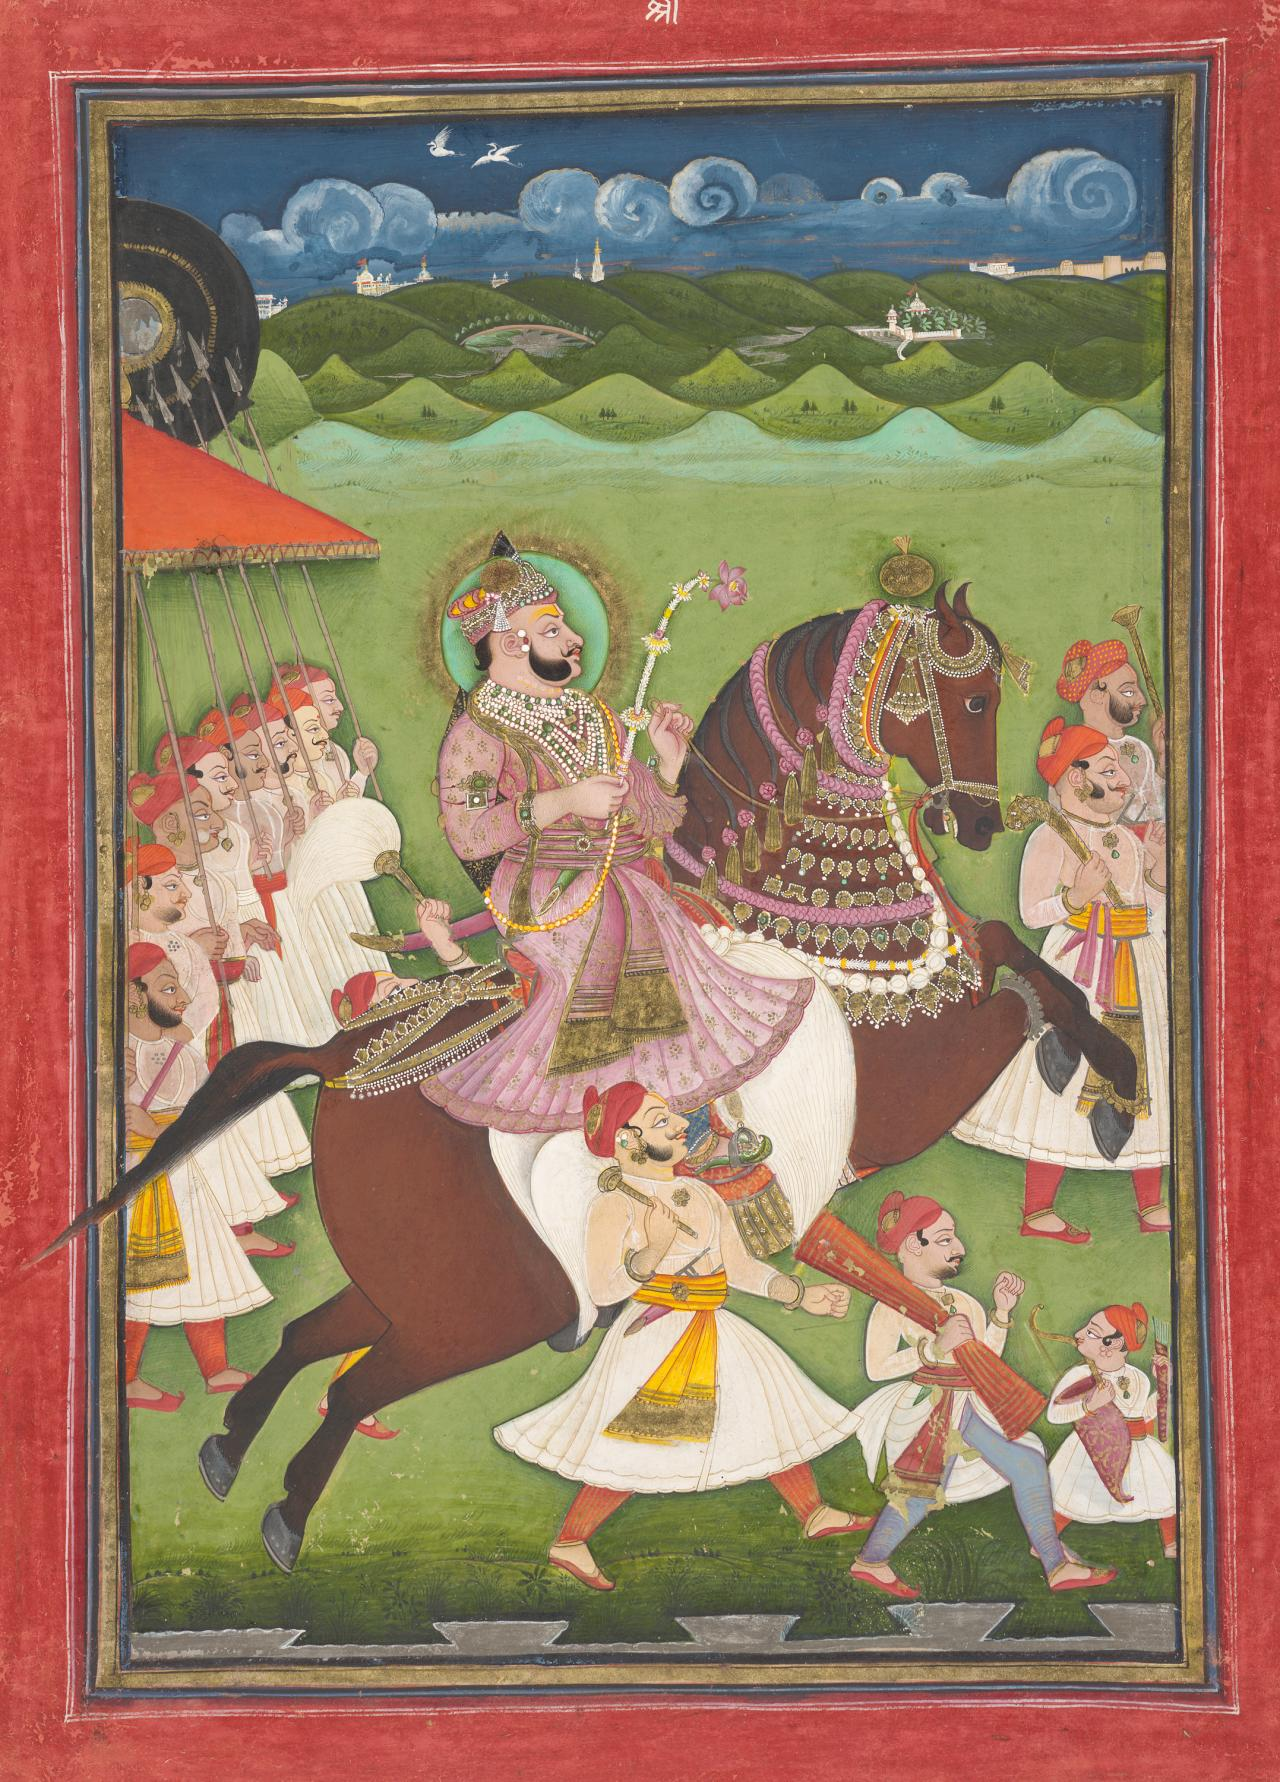 Maharao Ram Singh II of Kotah riding